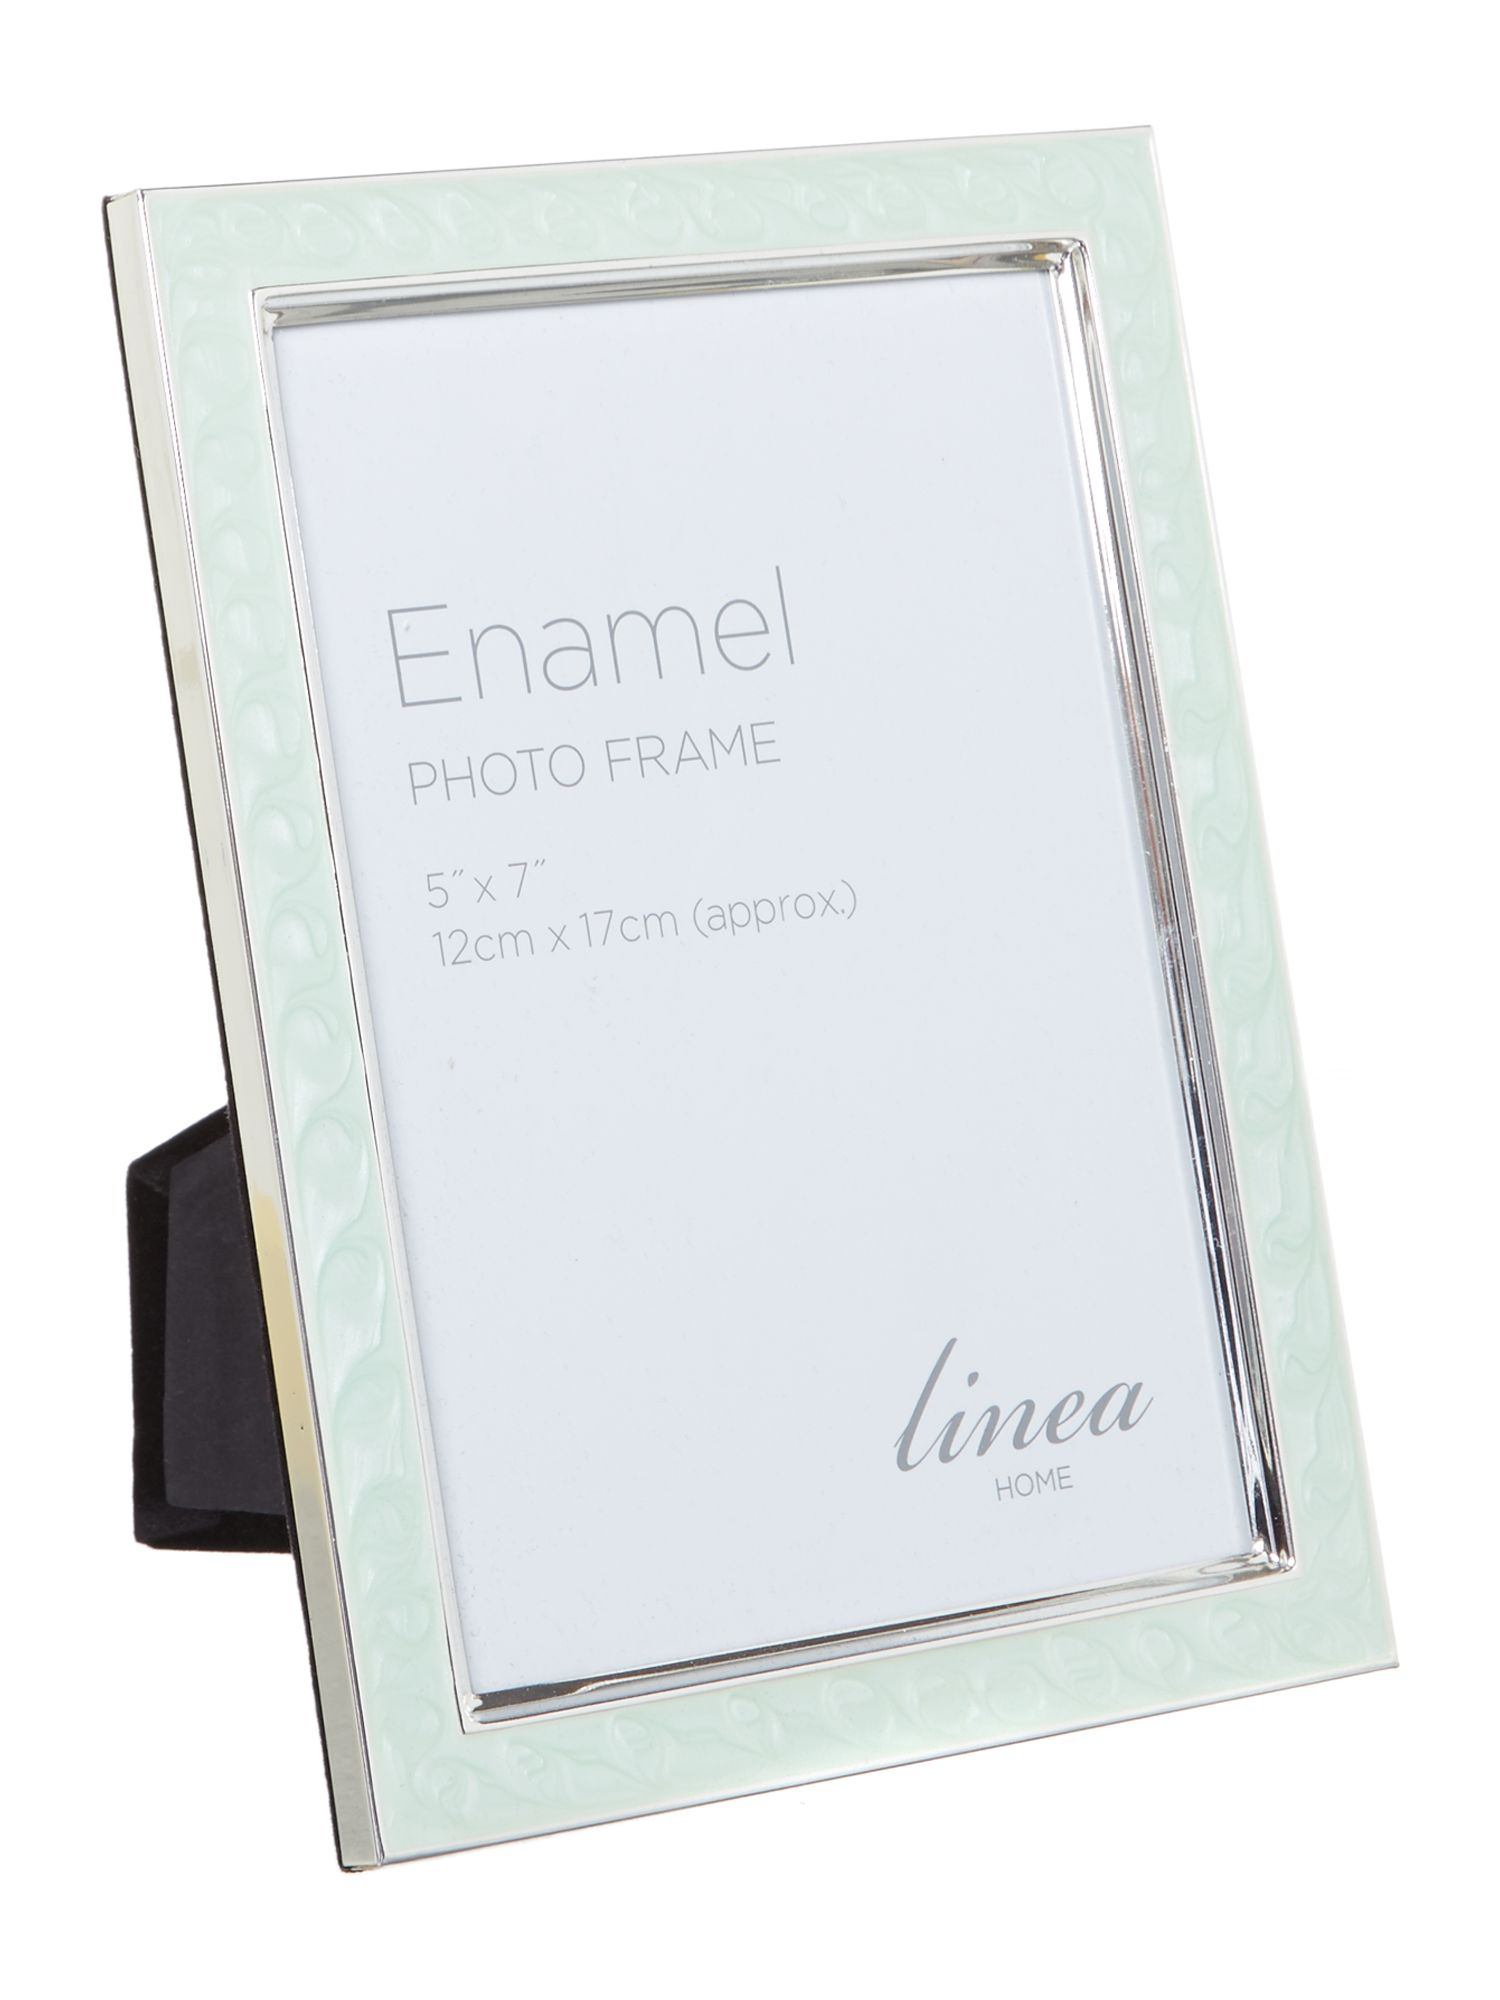 Mint enamel photo frame, 5 x 7